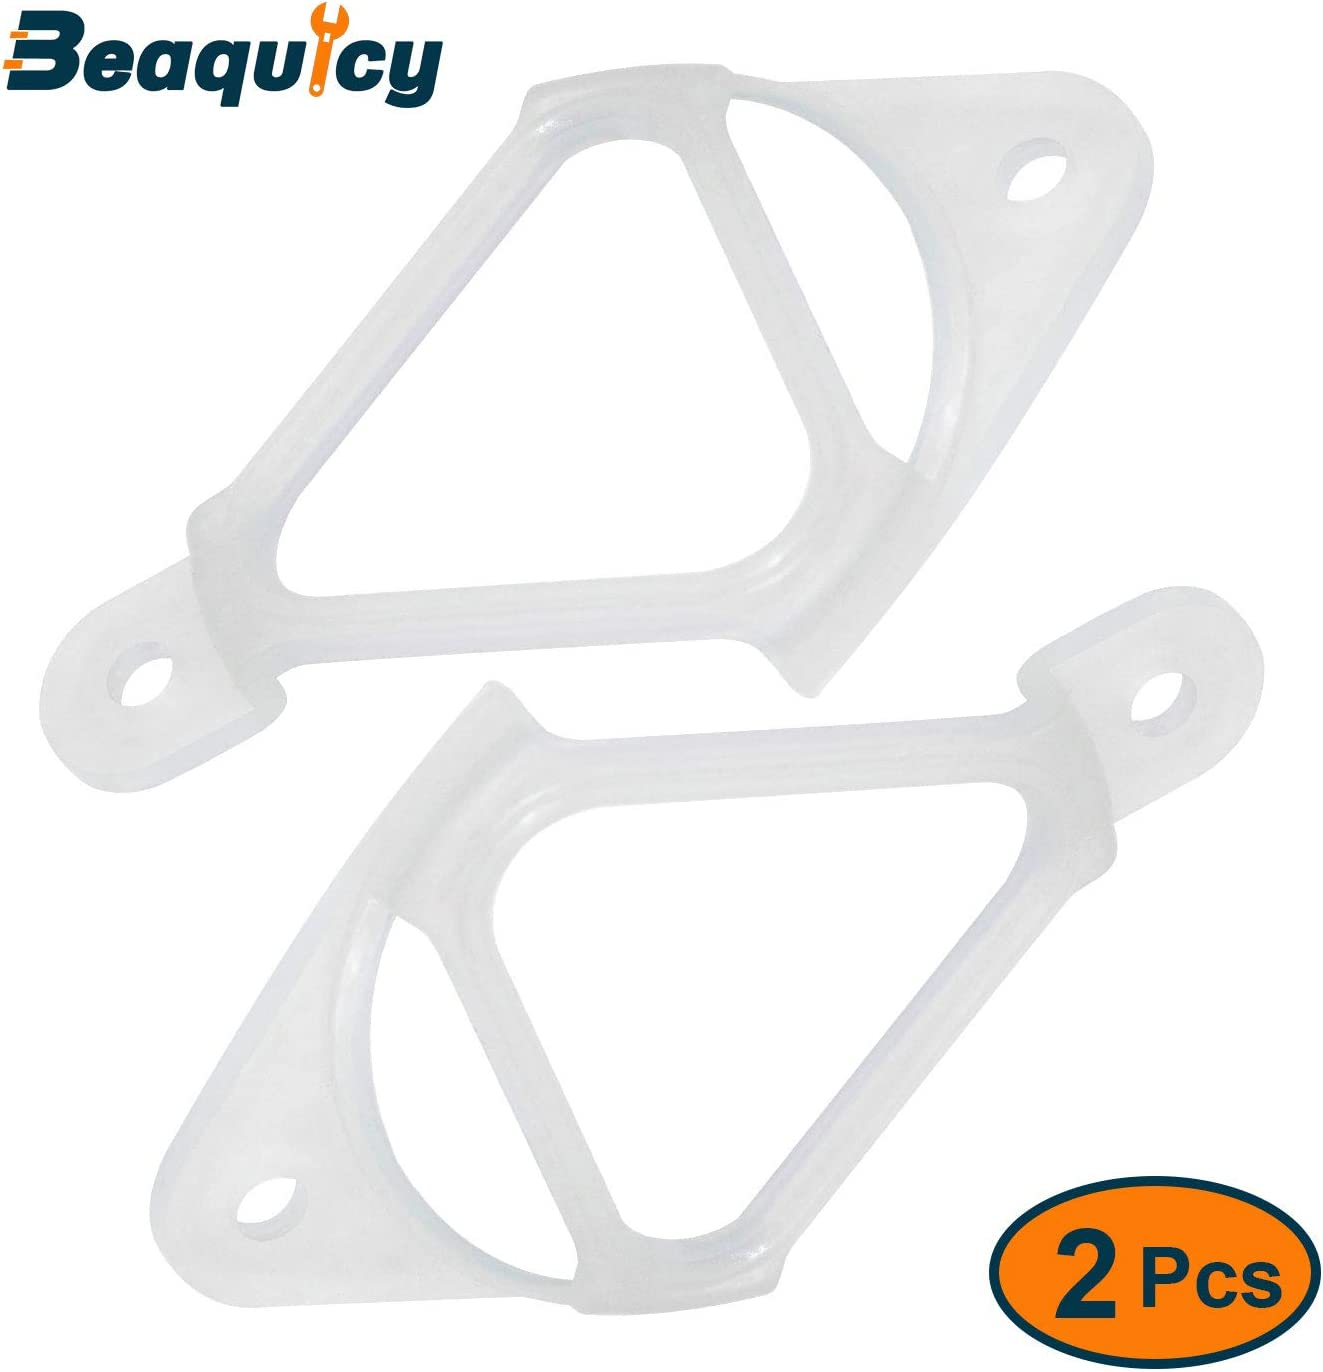 Beaquicy WH16X513 Drain Hose Clip for Washing Machine - Replacement for Ge and Hotpoint Washer - Pack of 2